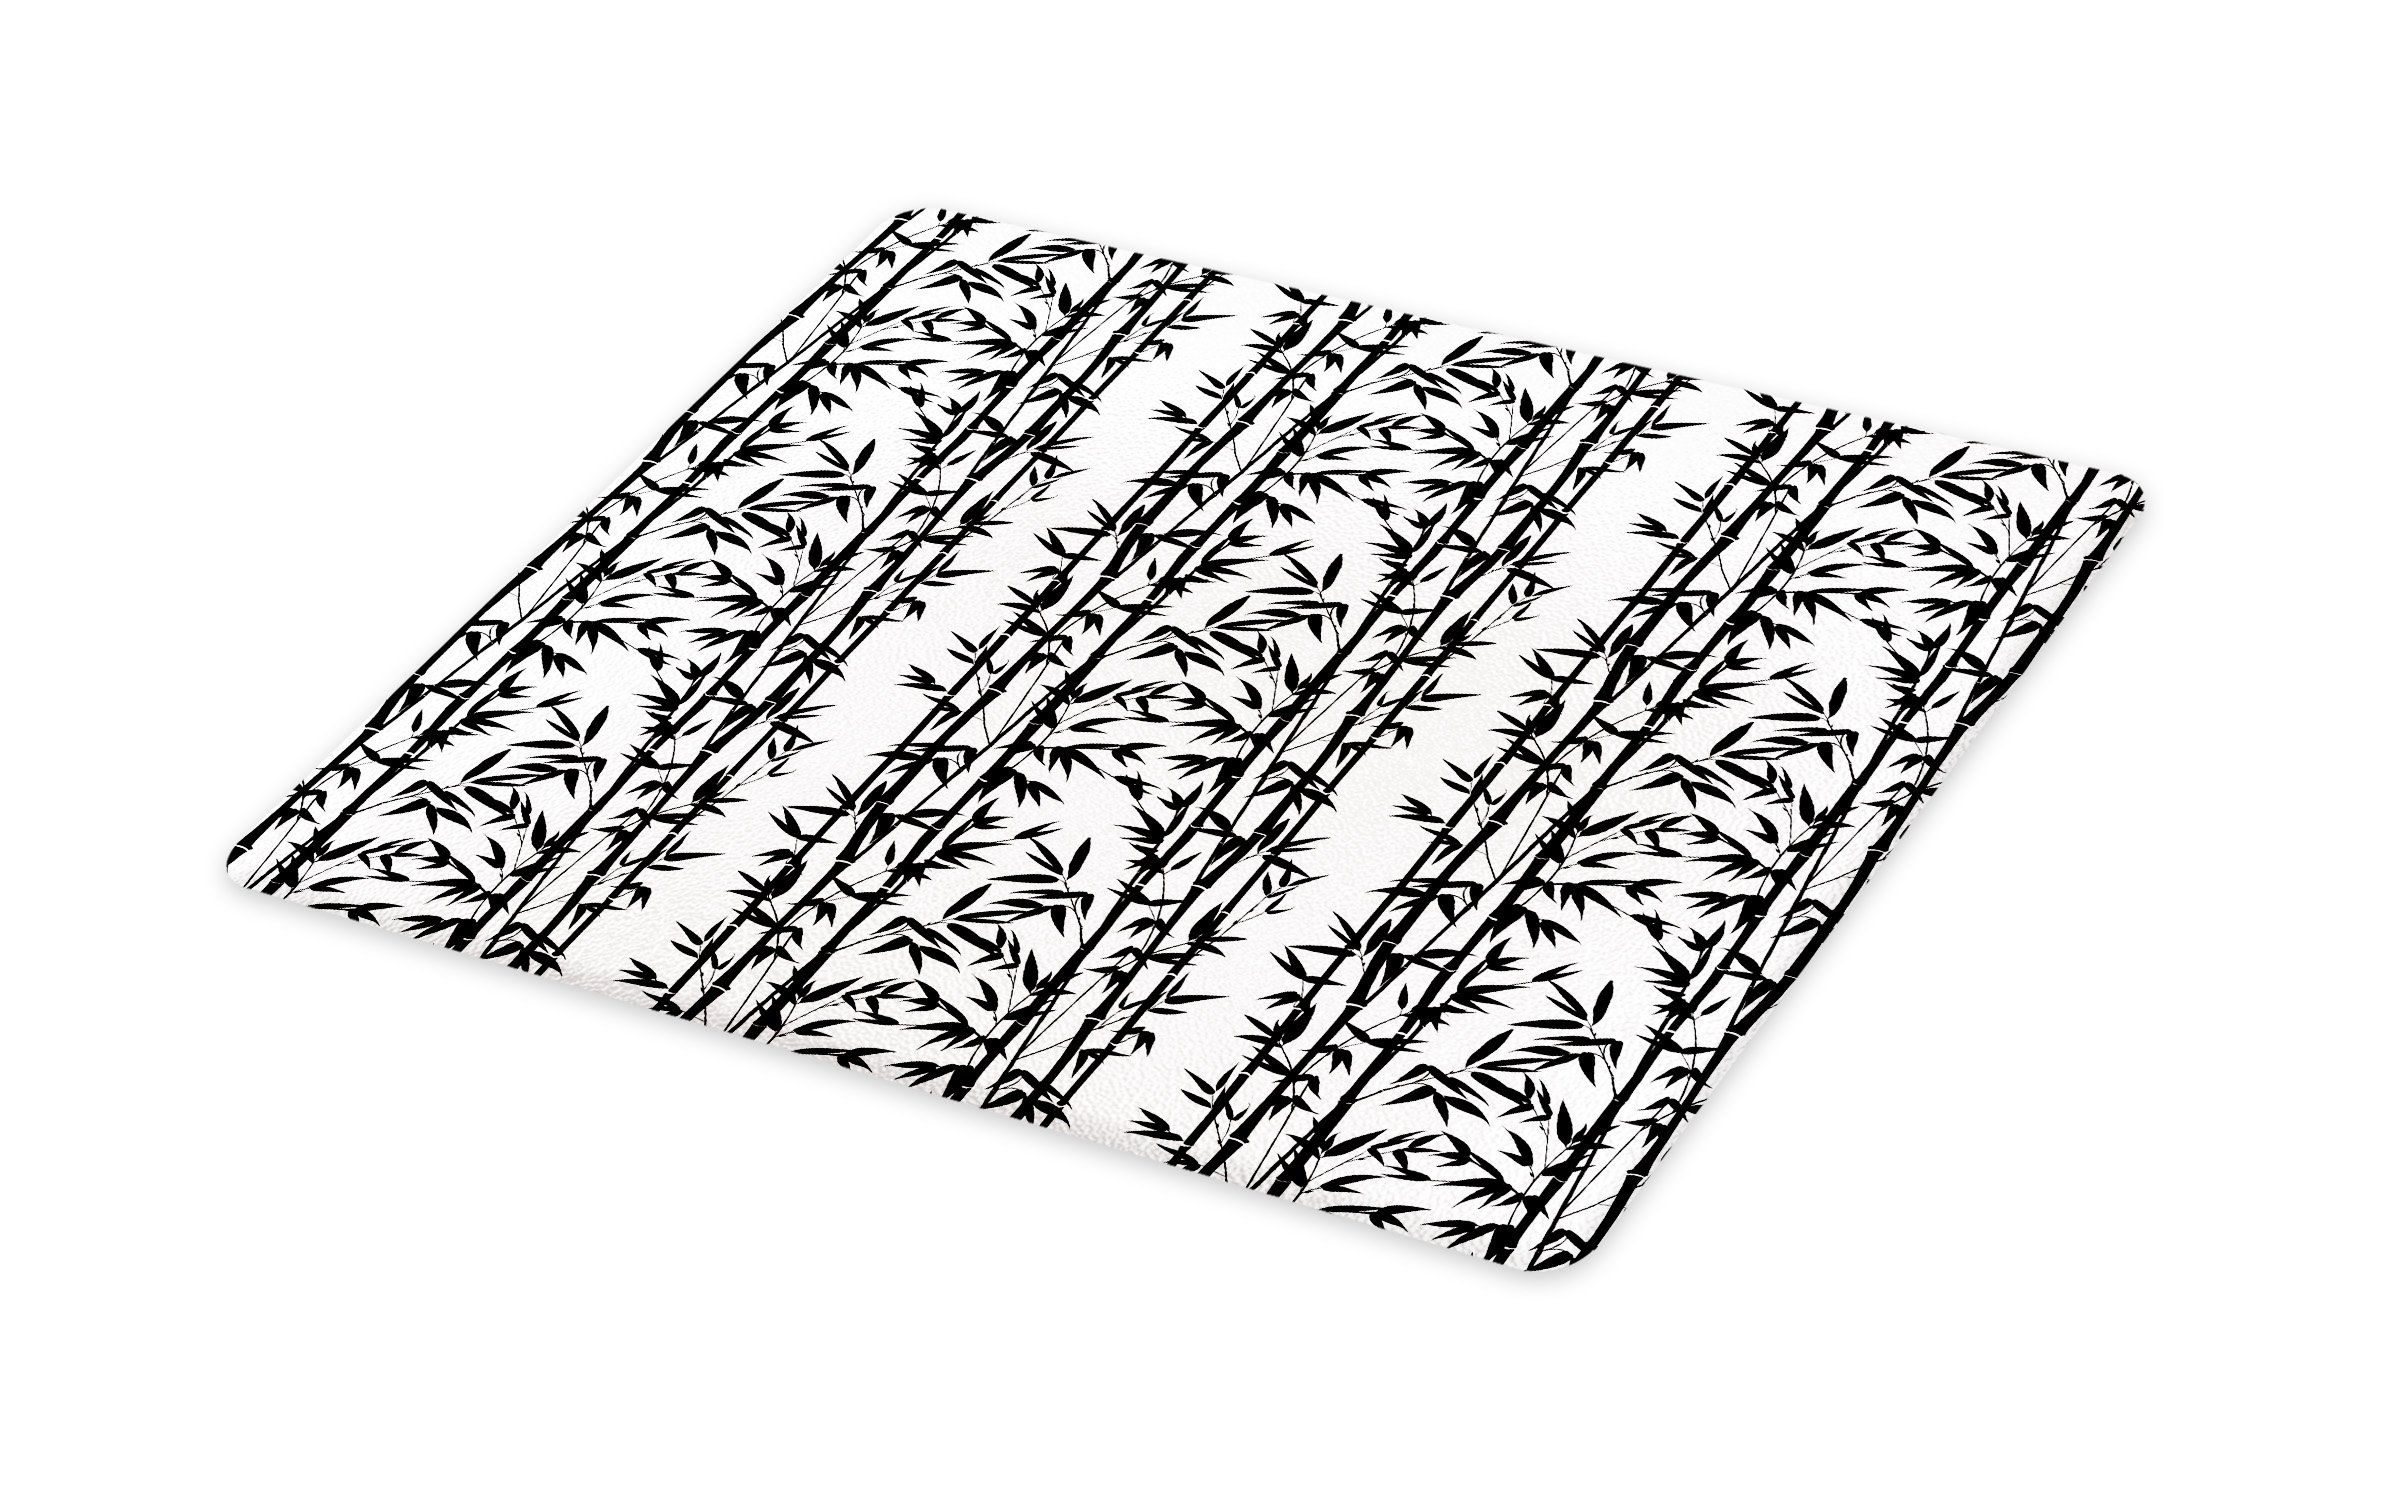 Lunarable Bamboo Cutting Board, Monochrome Natural Inspirations with Bamboo Tree Growth Exotic Garden Zen Spa Art, Decorative Tempered Glass Cutting and Serving Board, Large Size, Black White